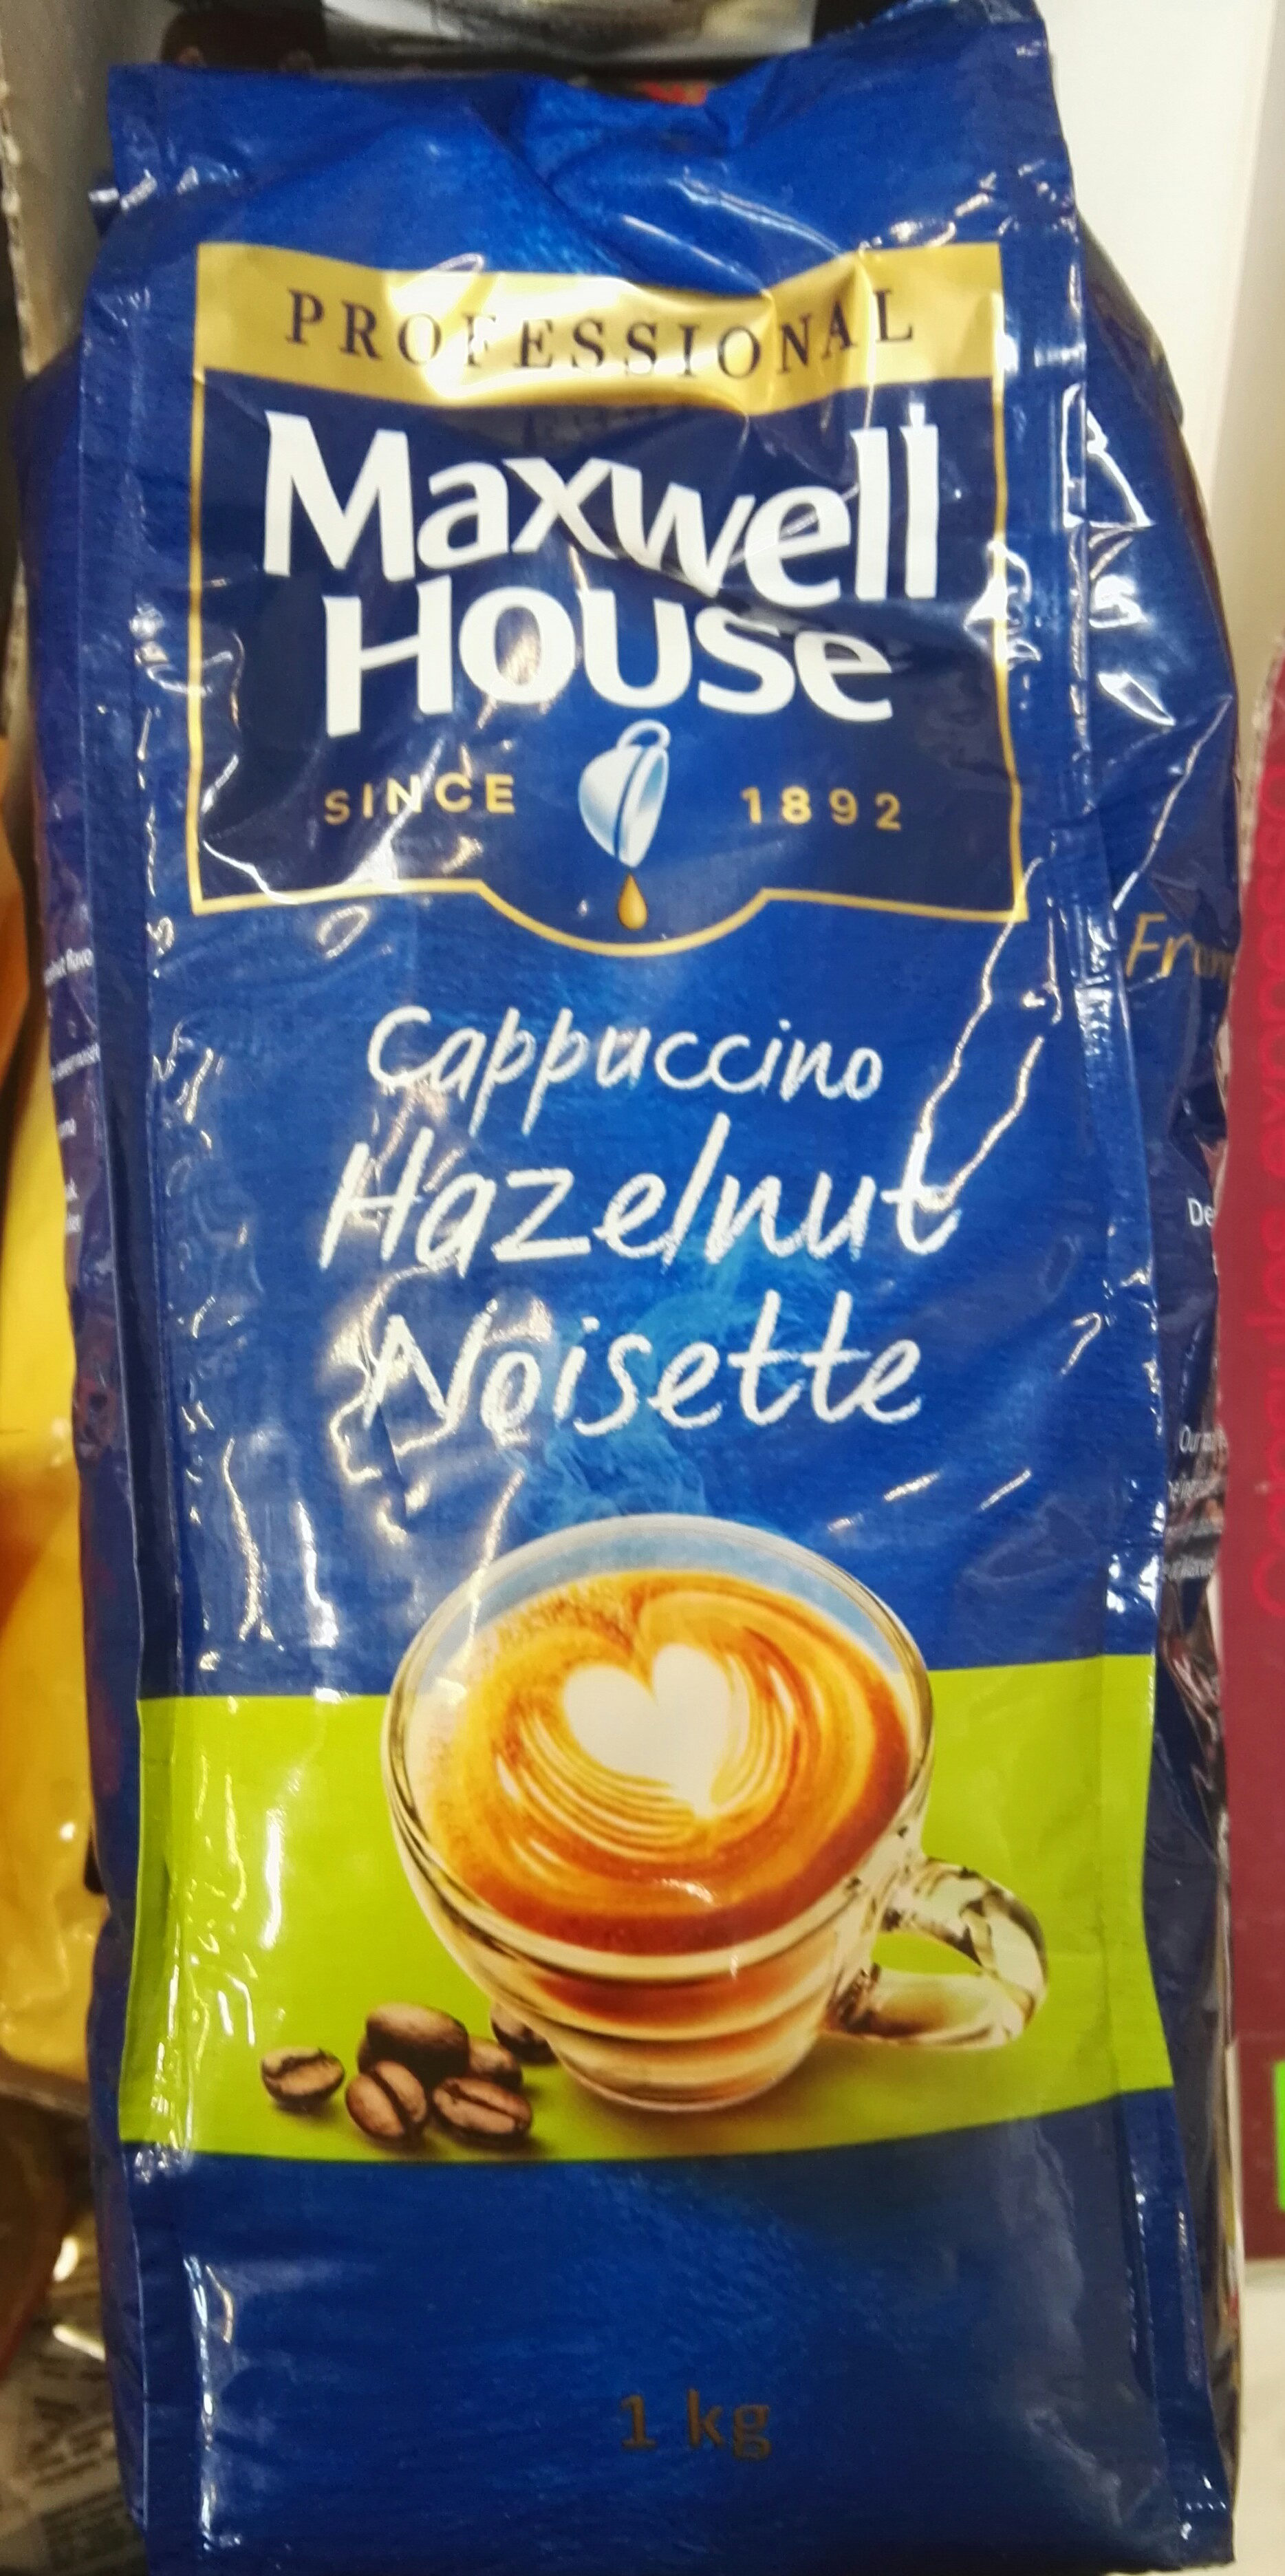 Capuccino noisette - Product - fr